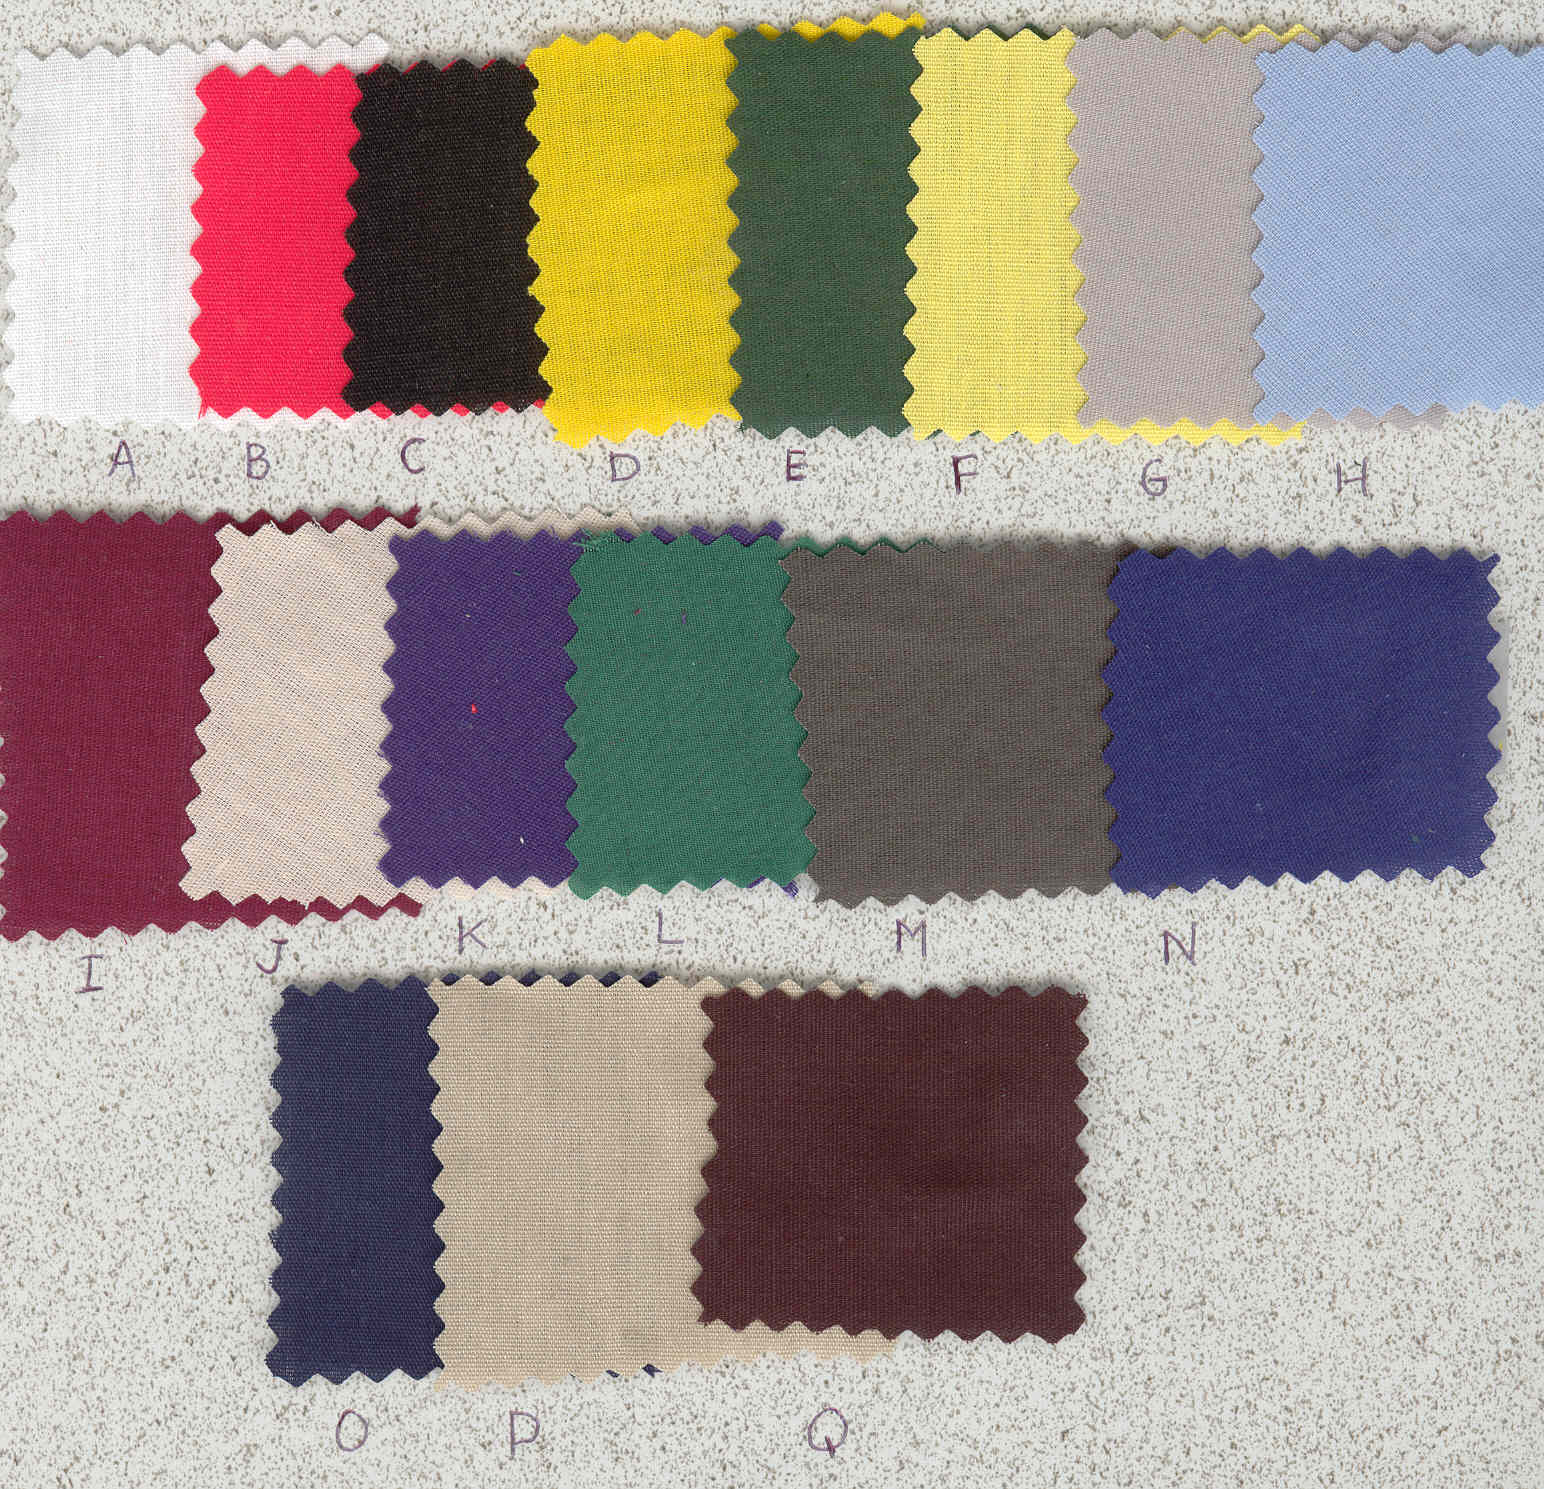 SCARF CLOTH COLOR SWATCHES.jpg